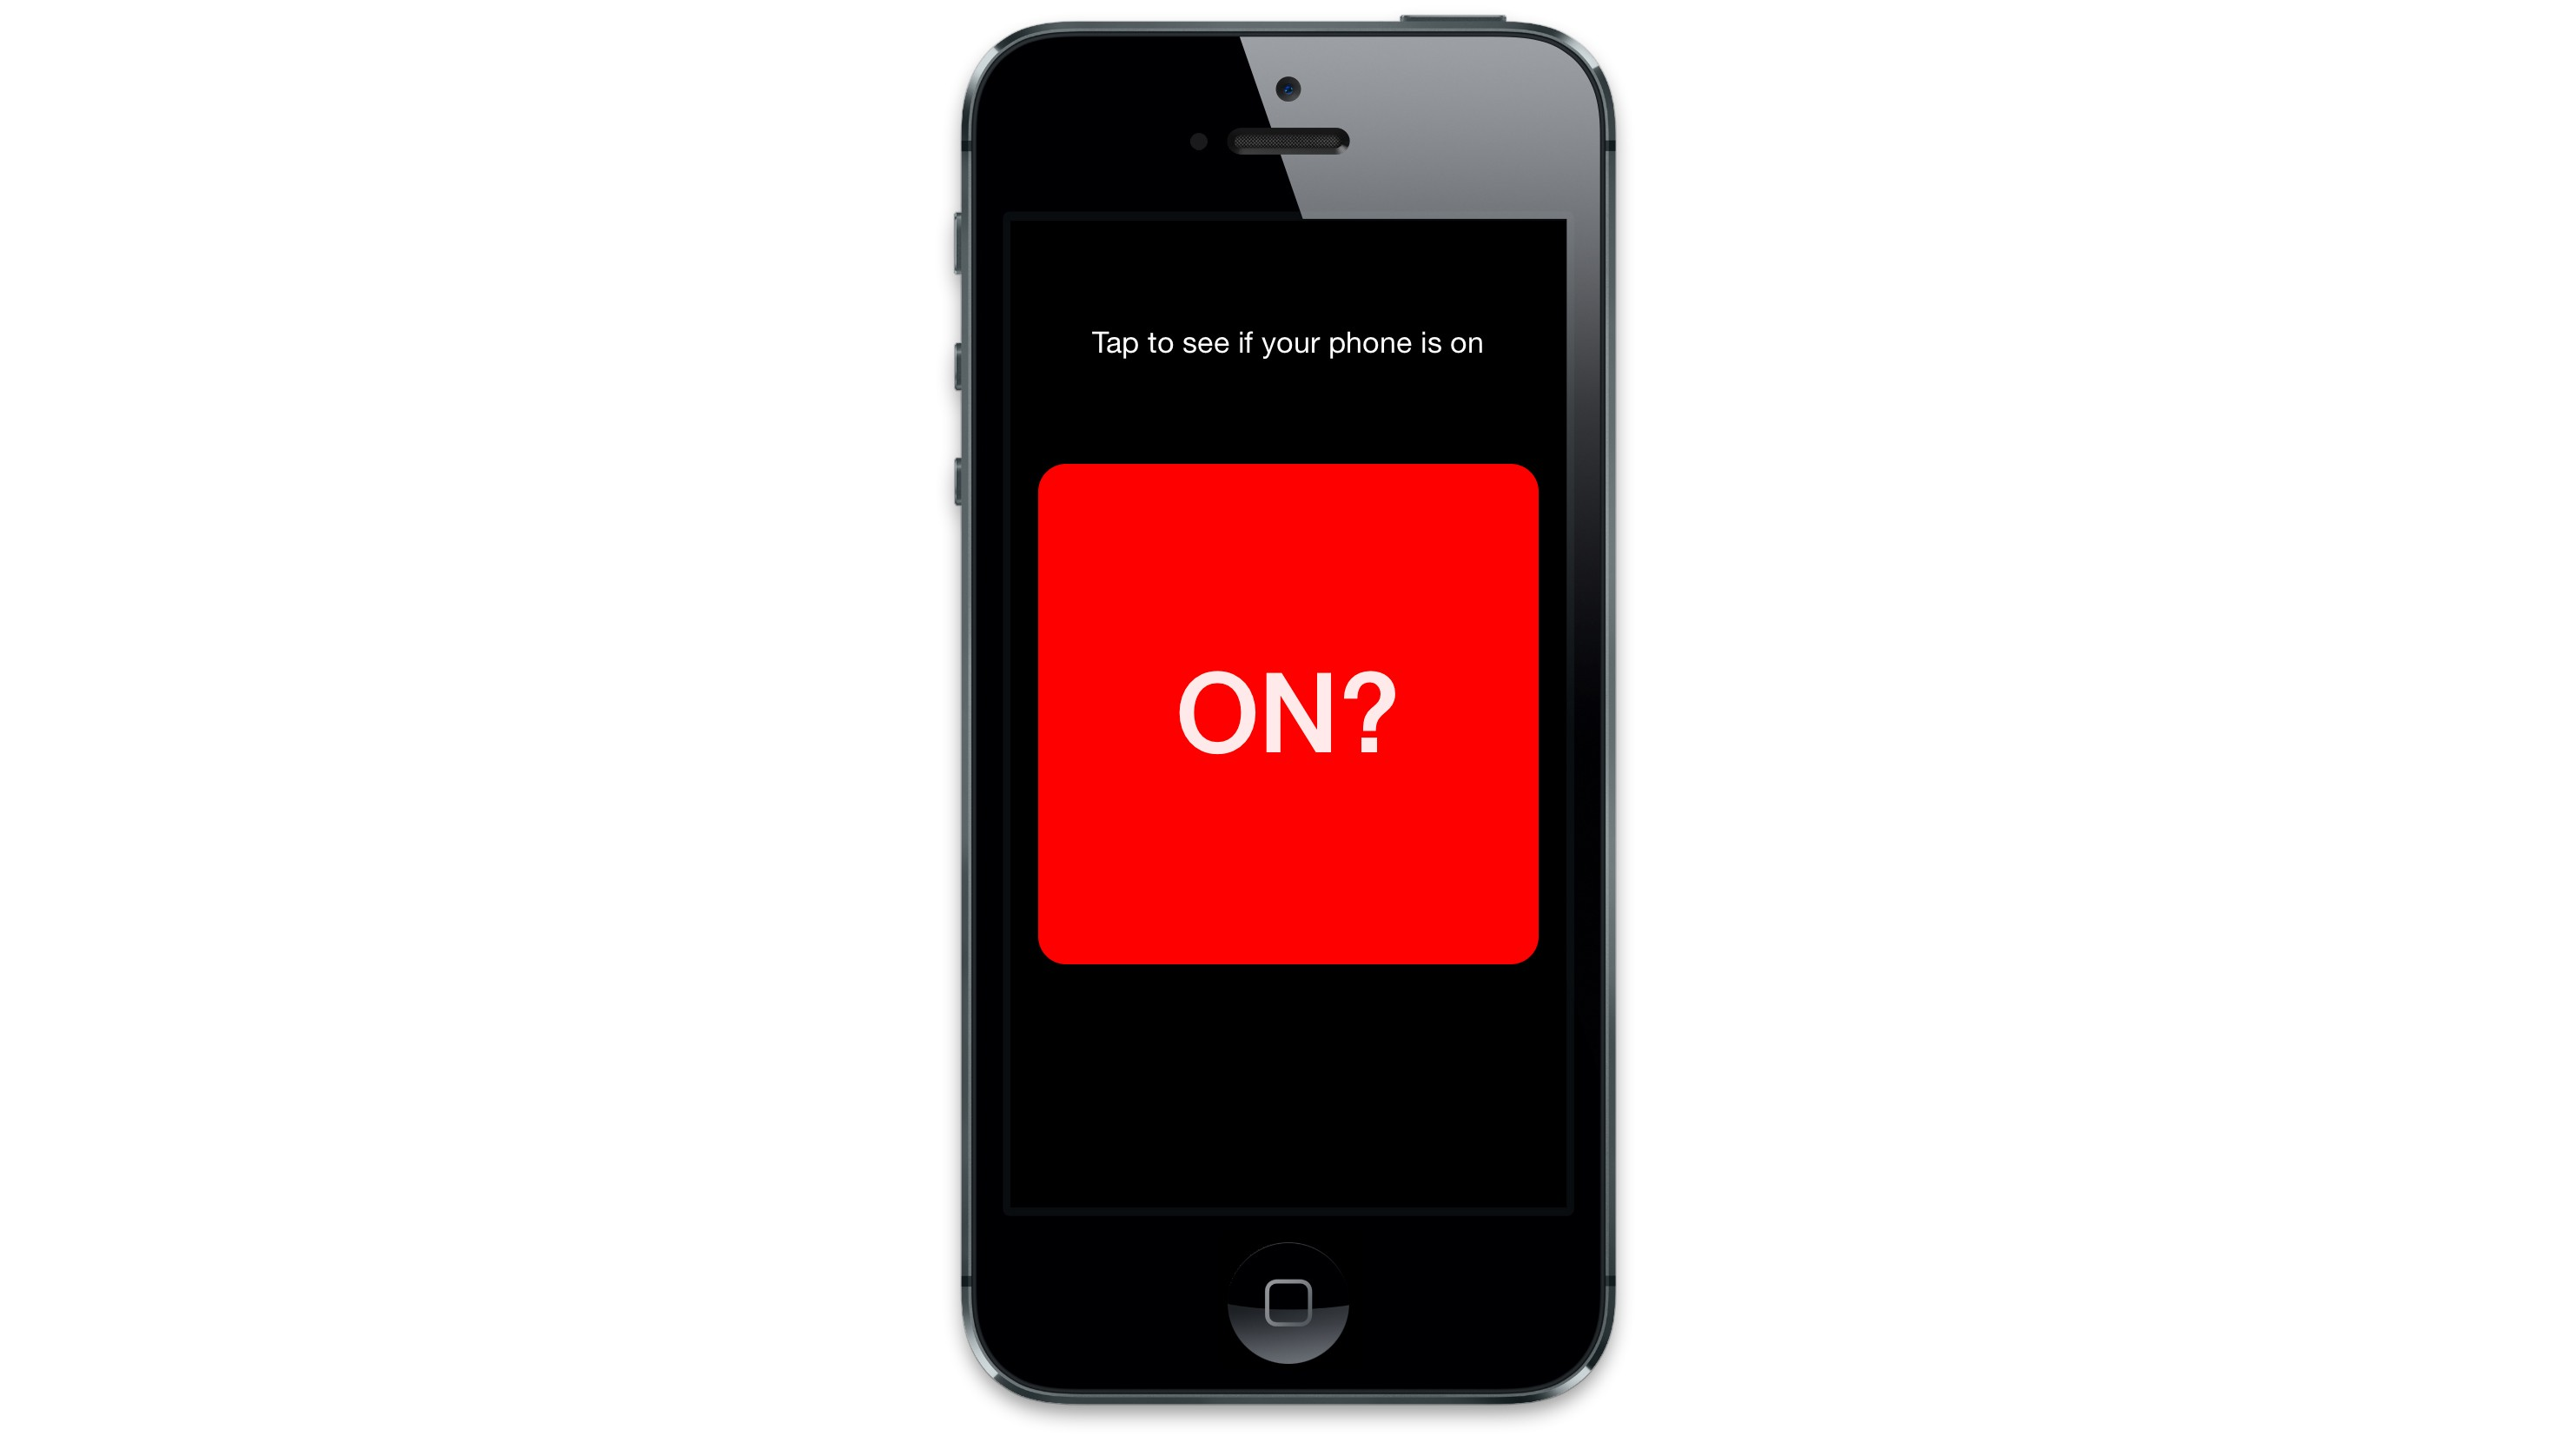 Is Your Phone On? Yes, There Is an App for That